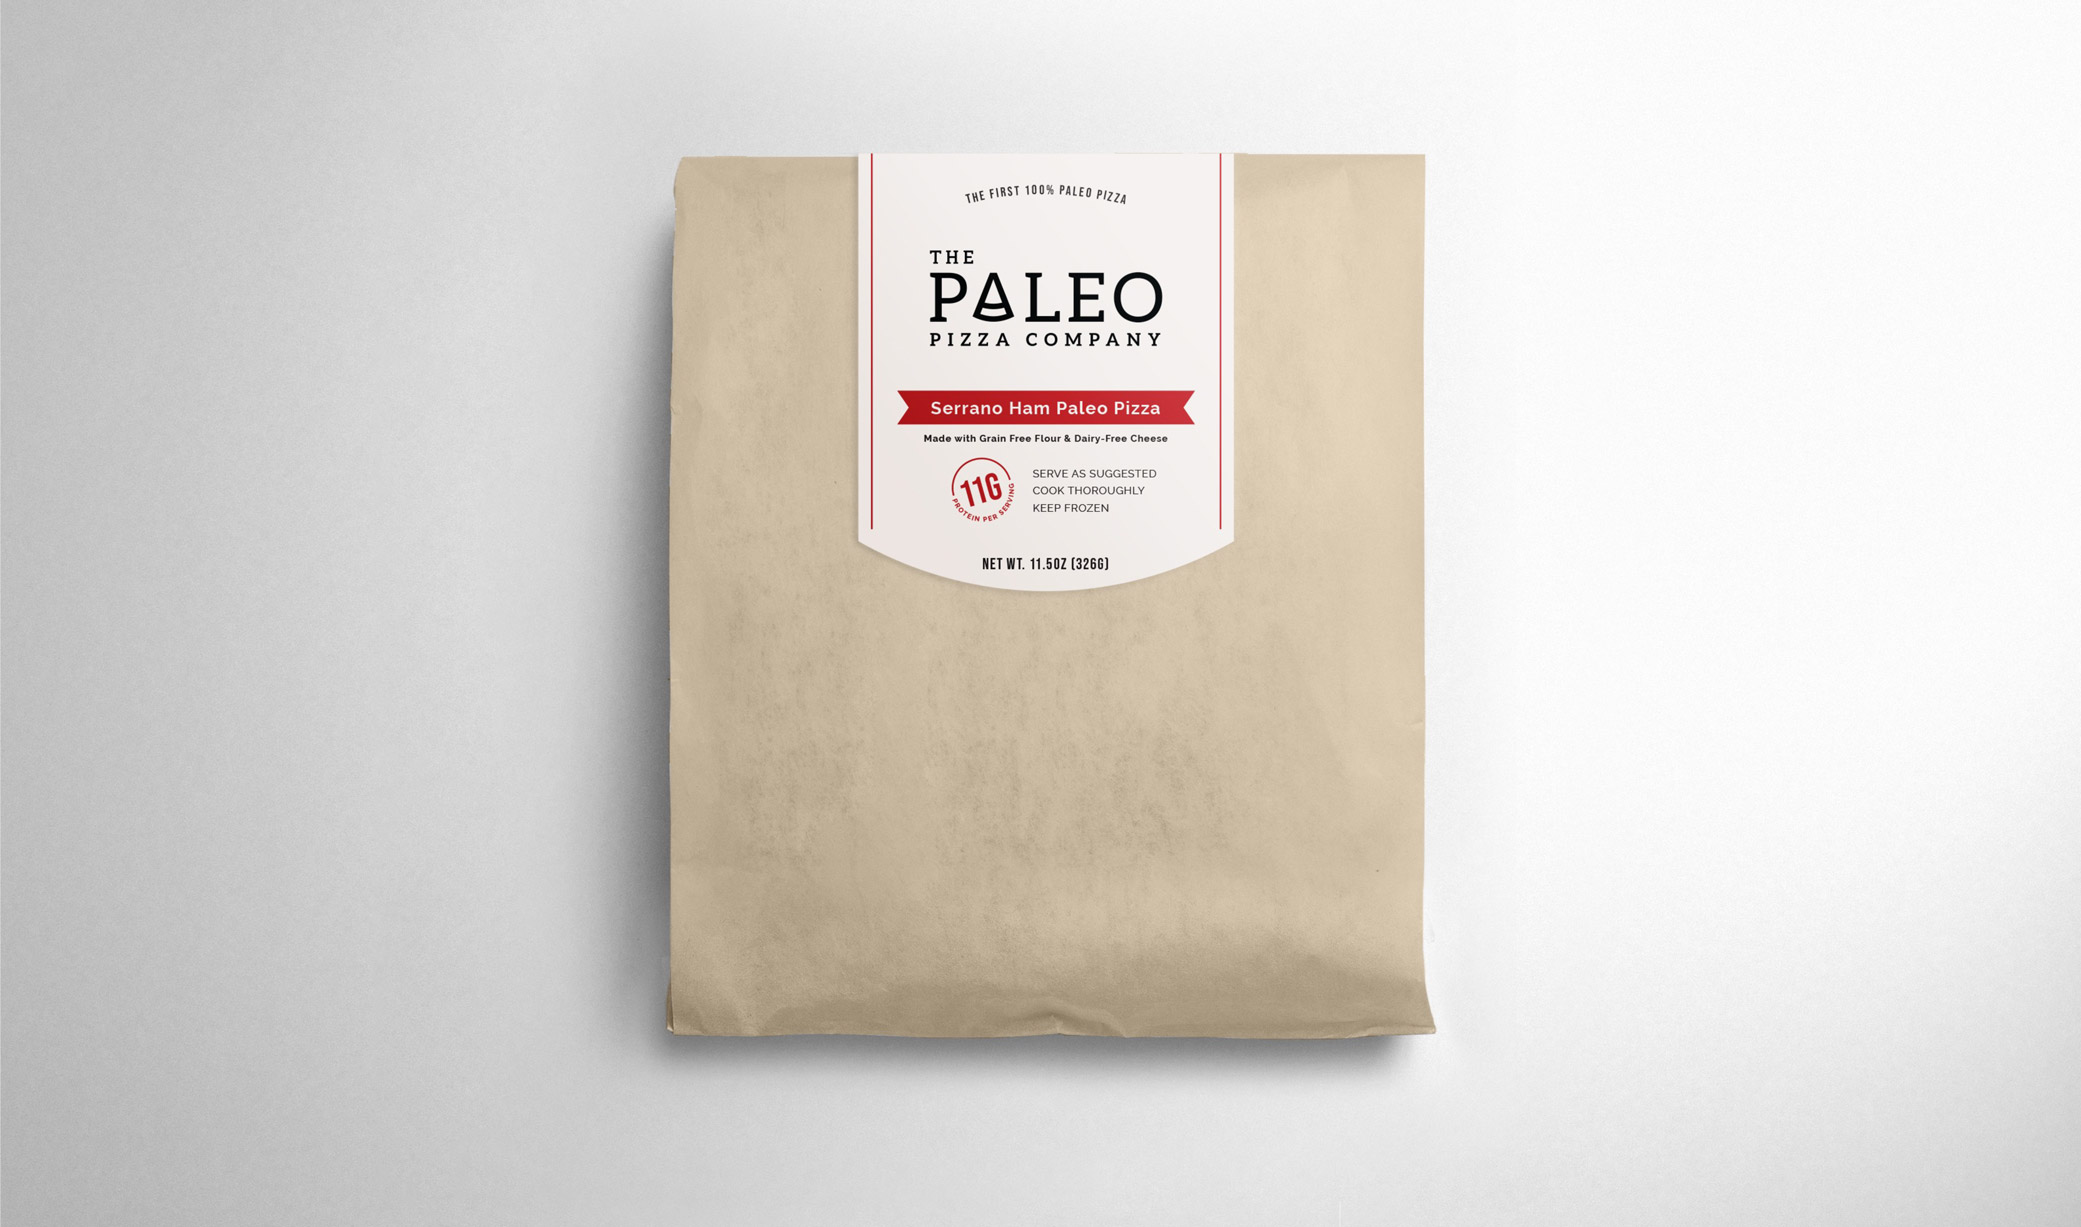 The Paleo Pizza Company packaging design in brown paper bag sealed with sticker label with logo and product description.